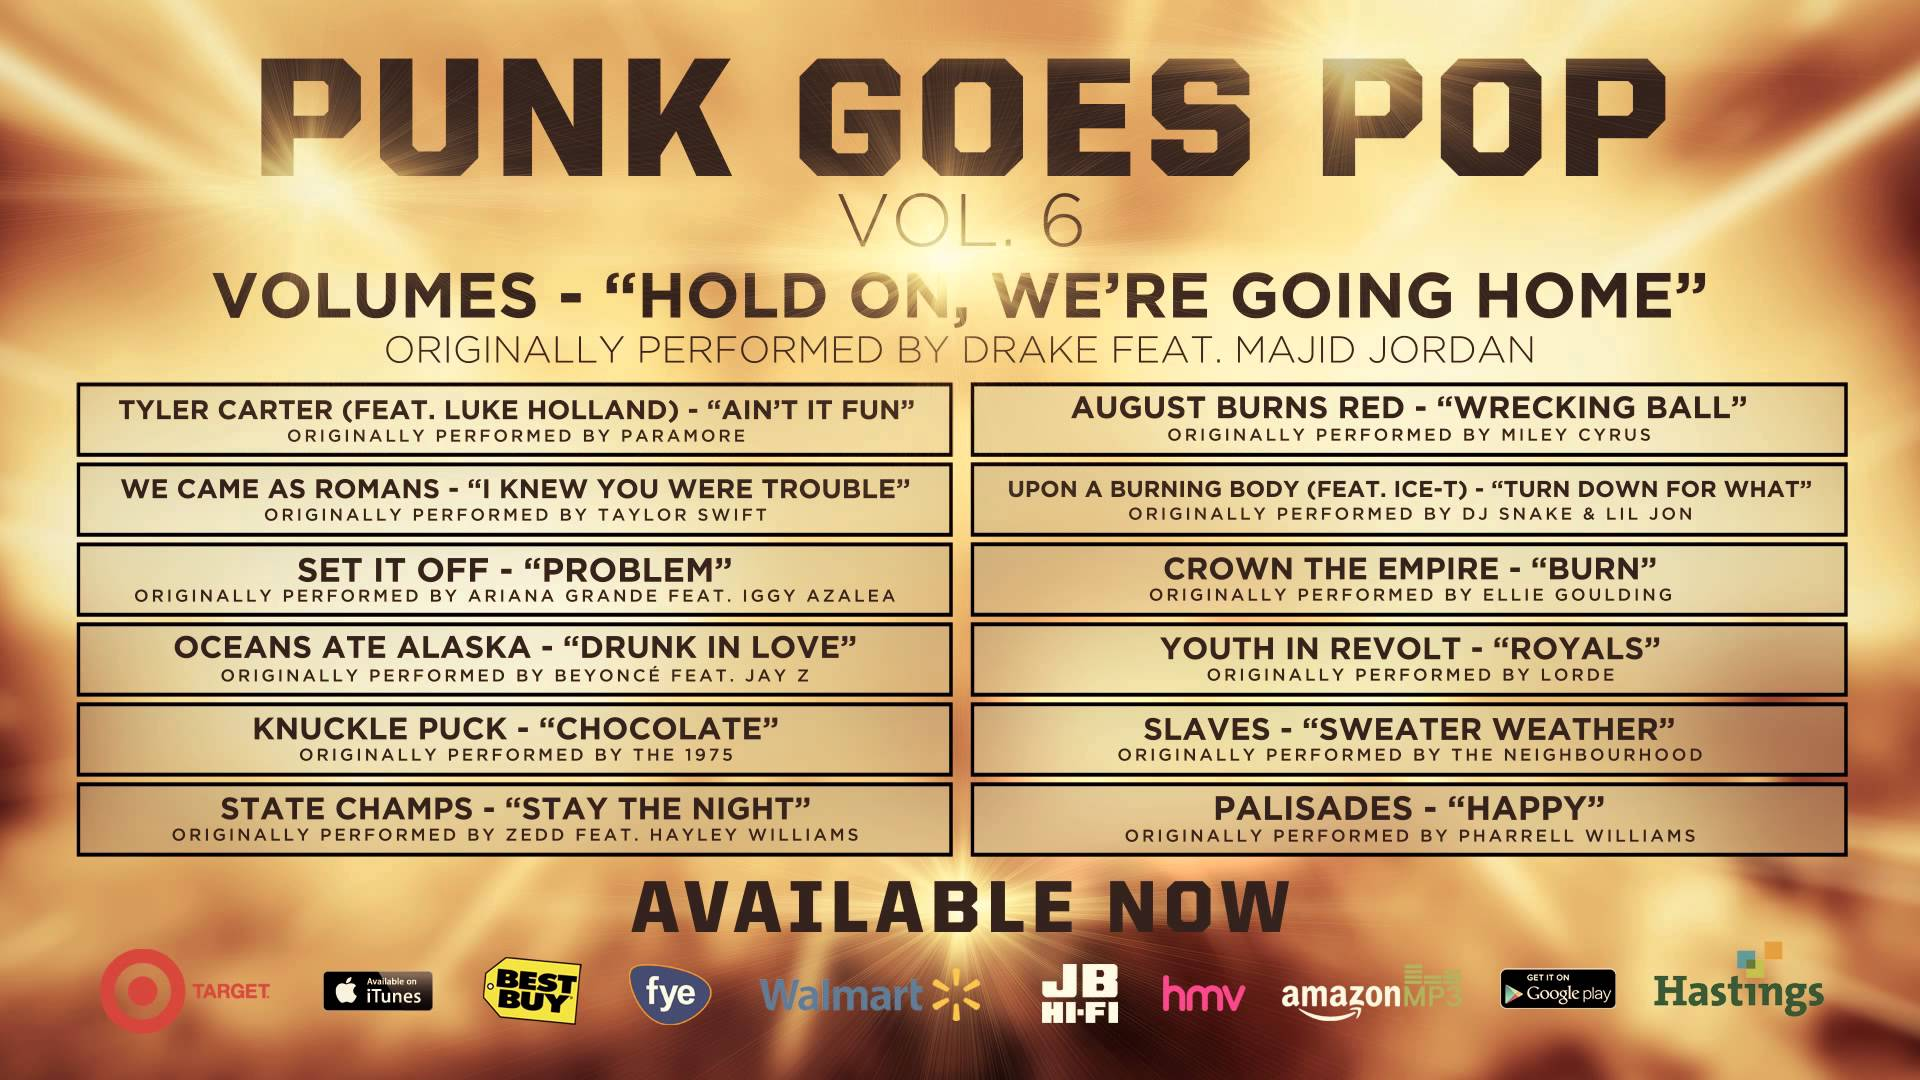 Punk Goes Pop Vol. 6 - Volumes 'Hold On, We're Going Home'